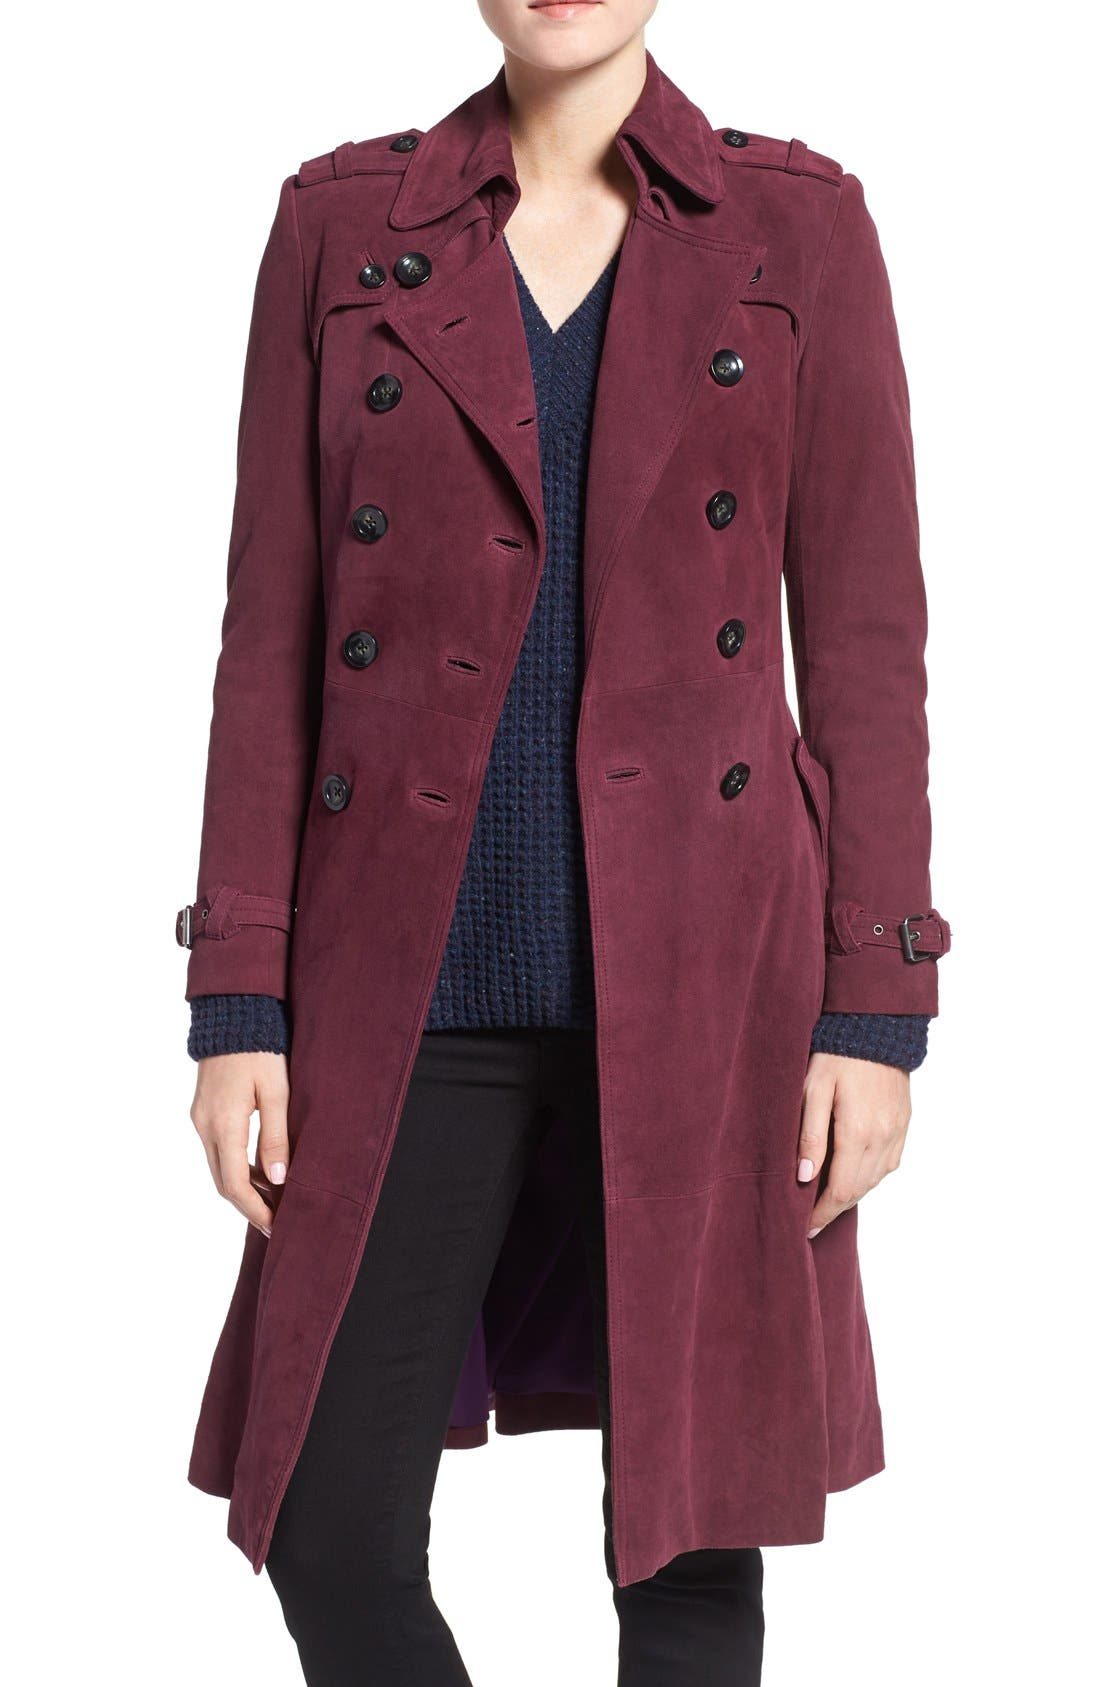 Alternate Image 1 Selected - Rebecca Minkoff 'Amis' Double Breasted Suede Trench Coat